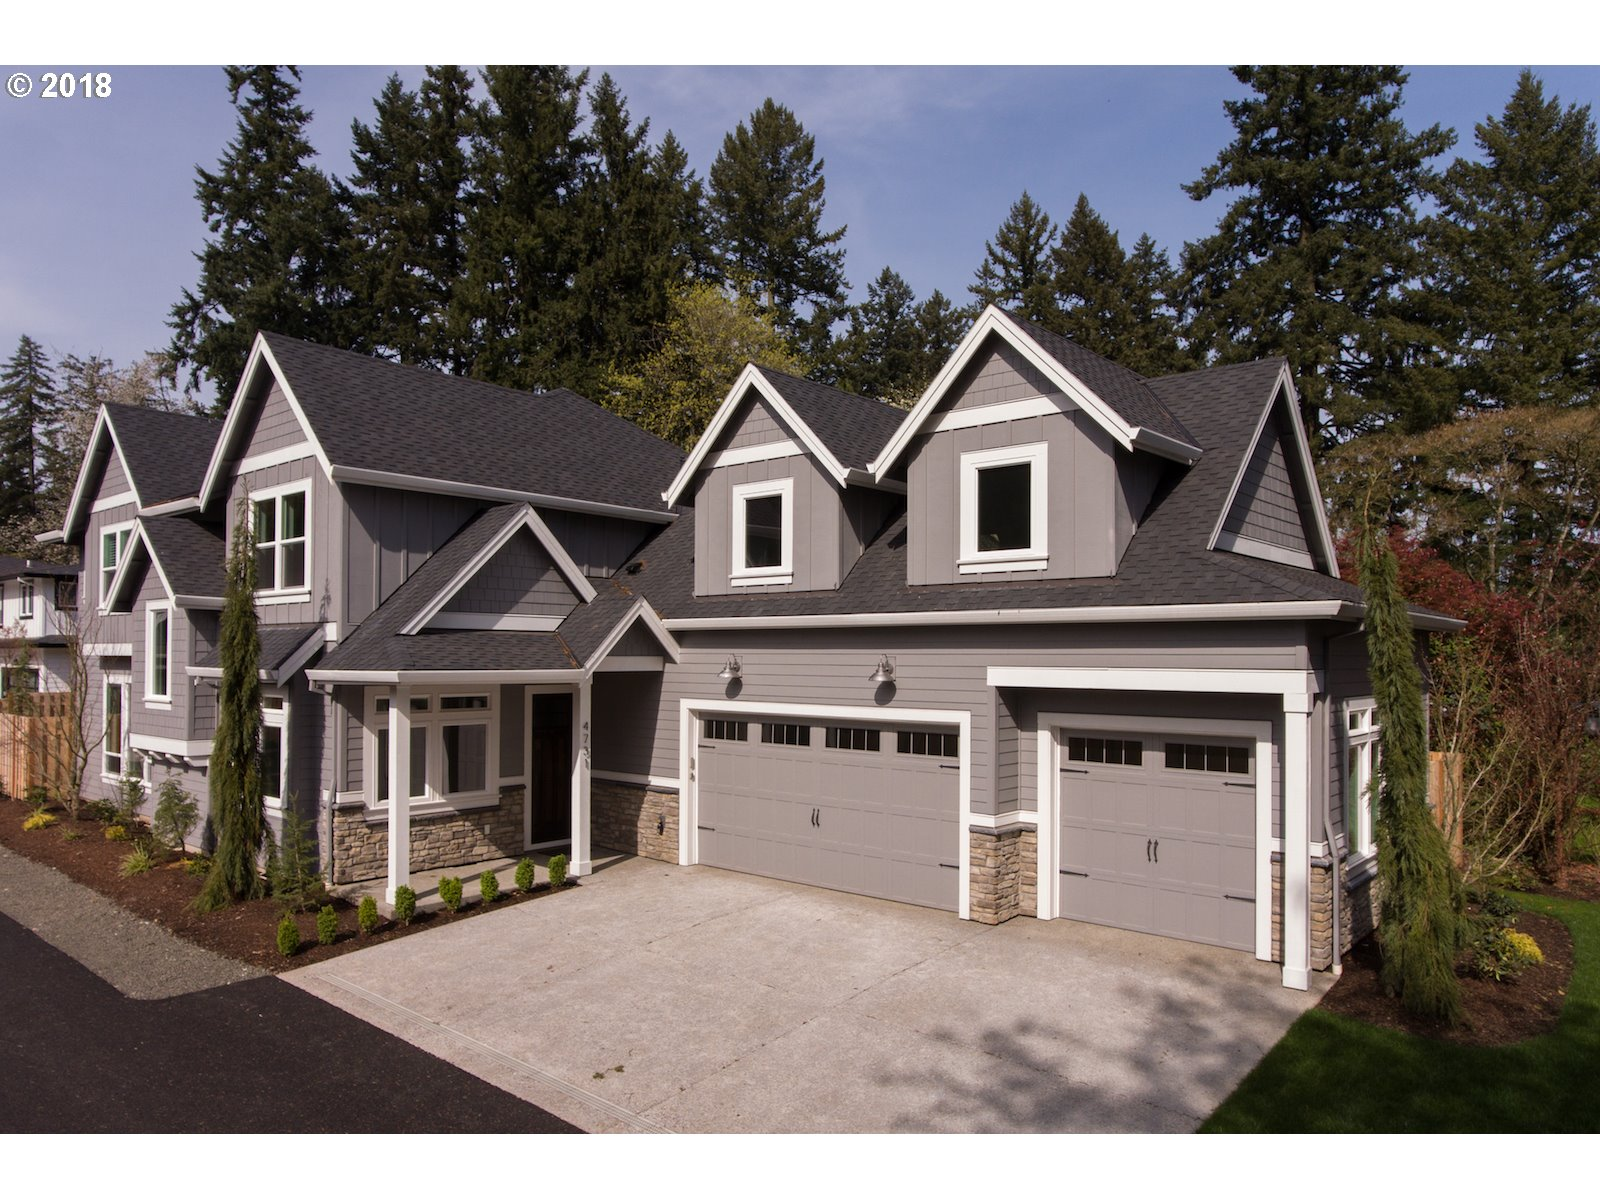 4731 UPPER DR, Lake Oswego, OR 97035